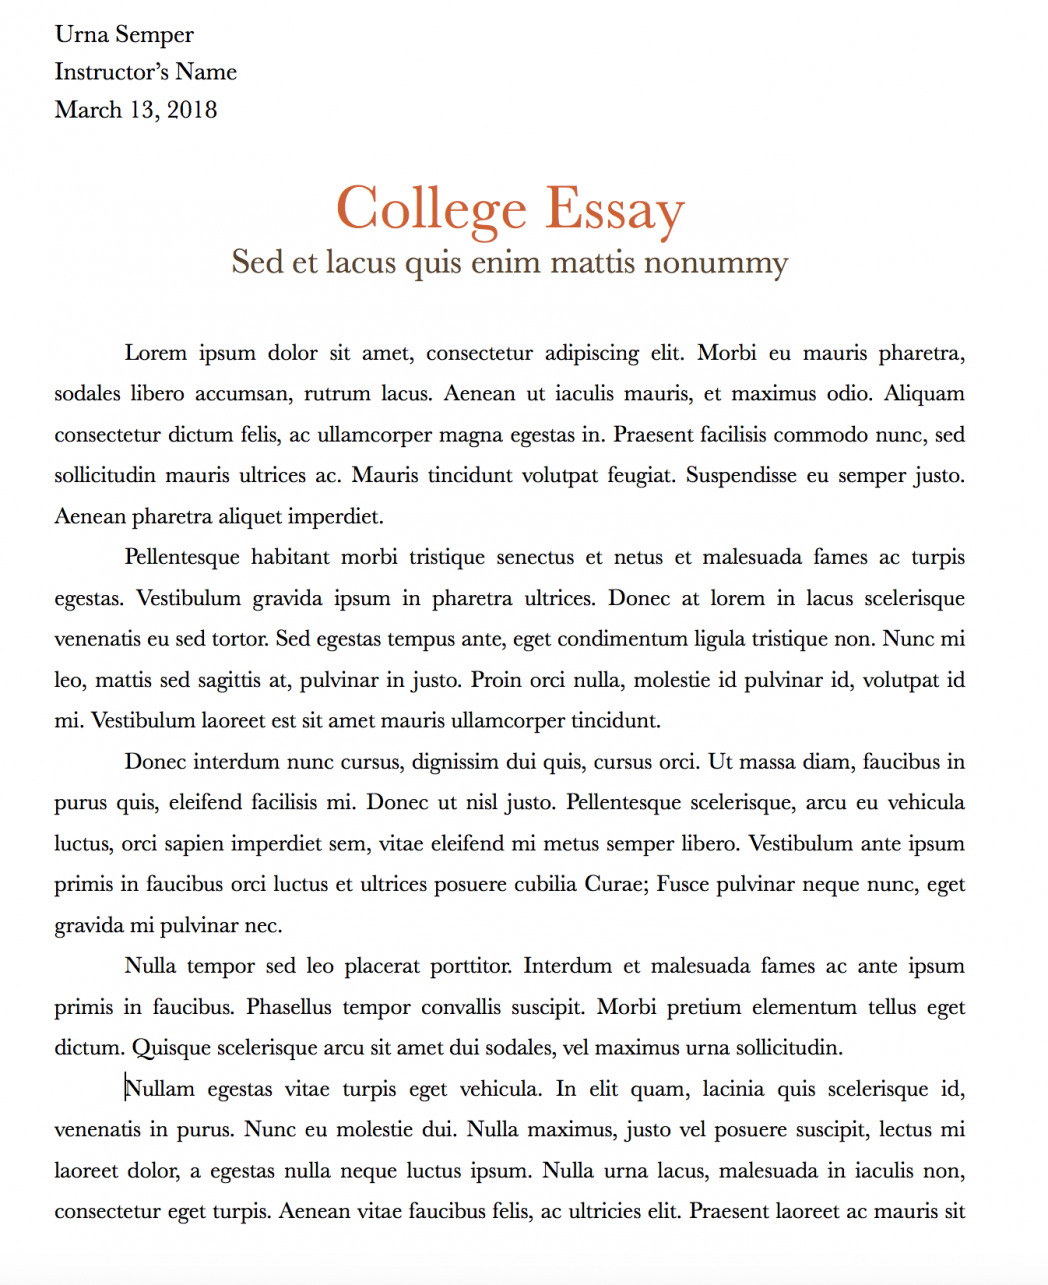 002 Essay Example How To Start Off An Write Interesting And Captivating College Examples Ctwrvkoshcimzkxyhyl8 With Parag Scholarship About Yourself Excellent The First Body Paragraph In A Good Your Life 3 Full